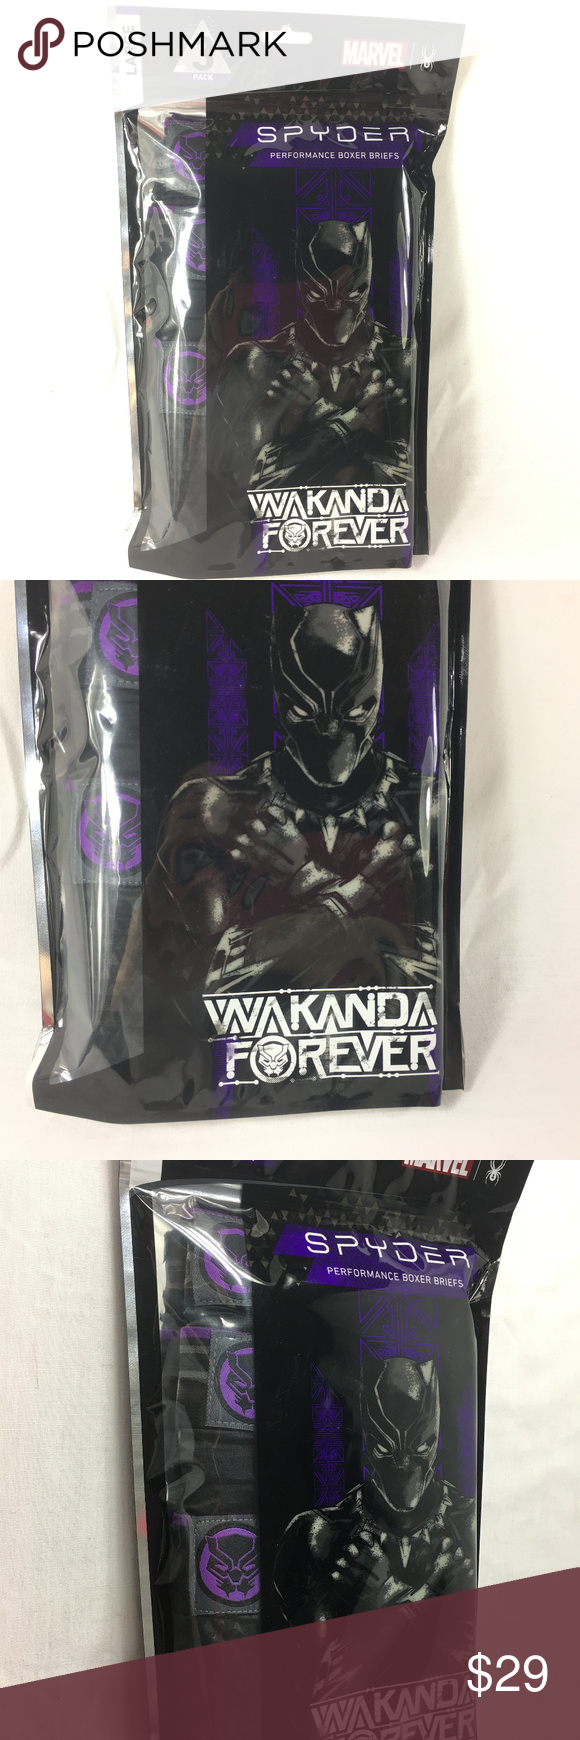 7acc5c301063 Spyder Black Panther Boxer briefs Spyder Marvel Black Panther Boxer Briefs  Men's Large 36/38 3 Pack NEW XL and Large Medium available in my store  Spyder ...